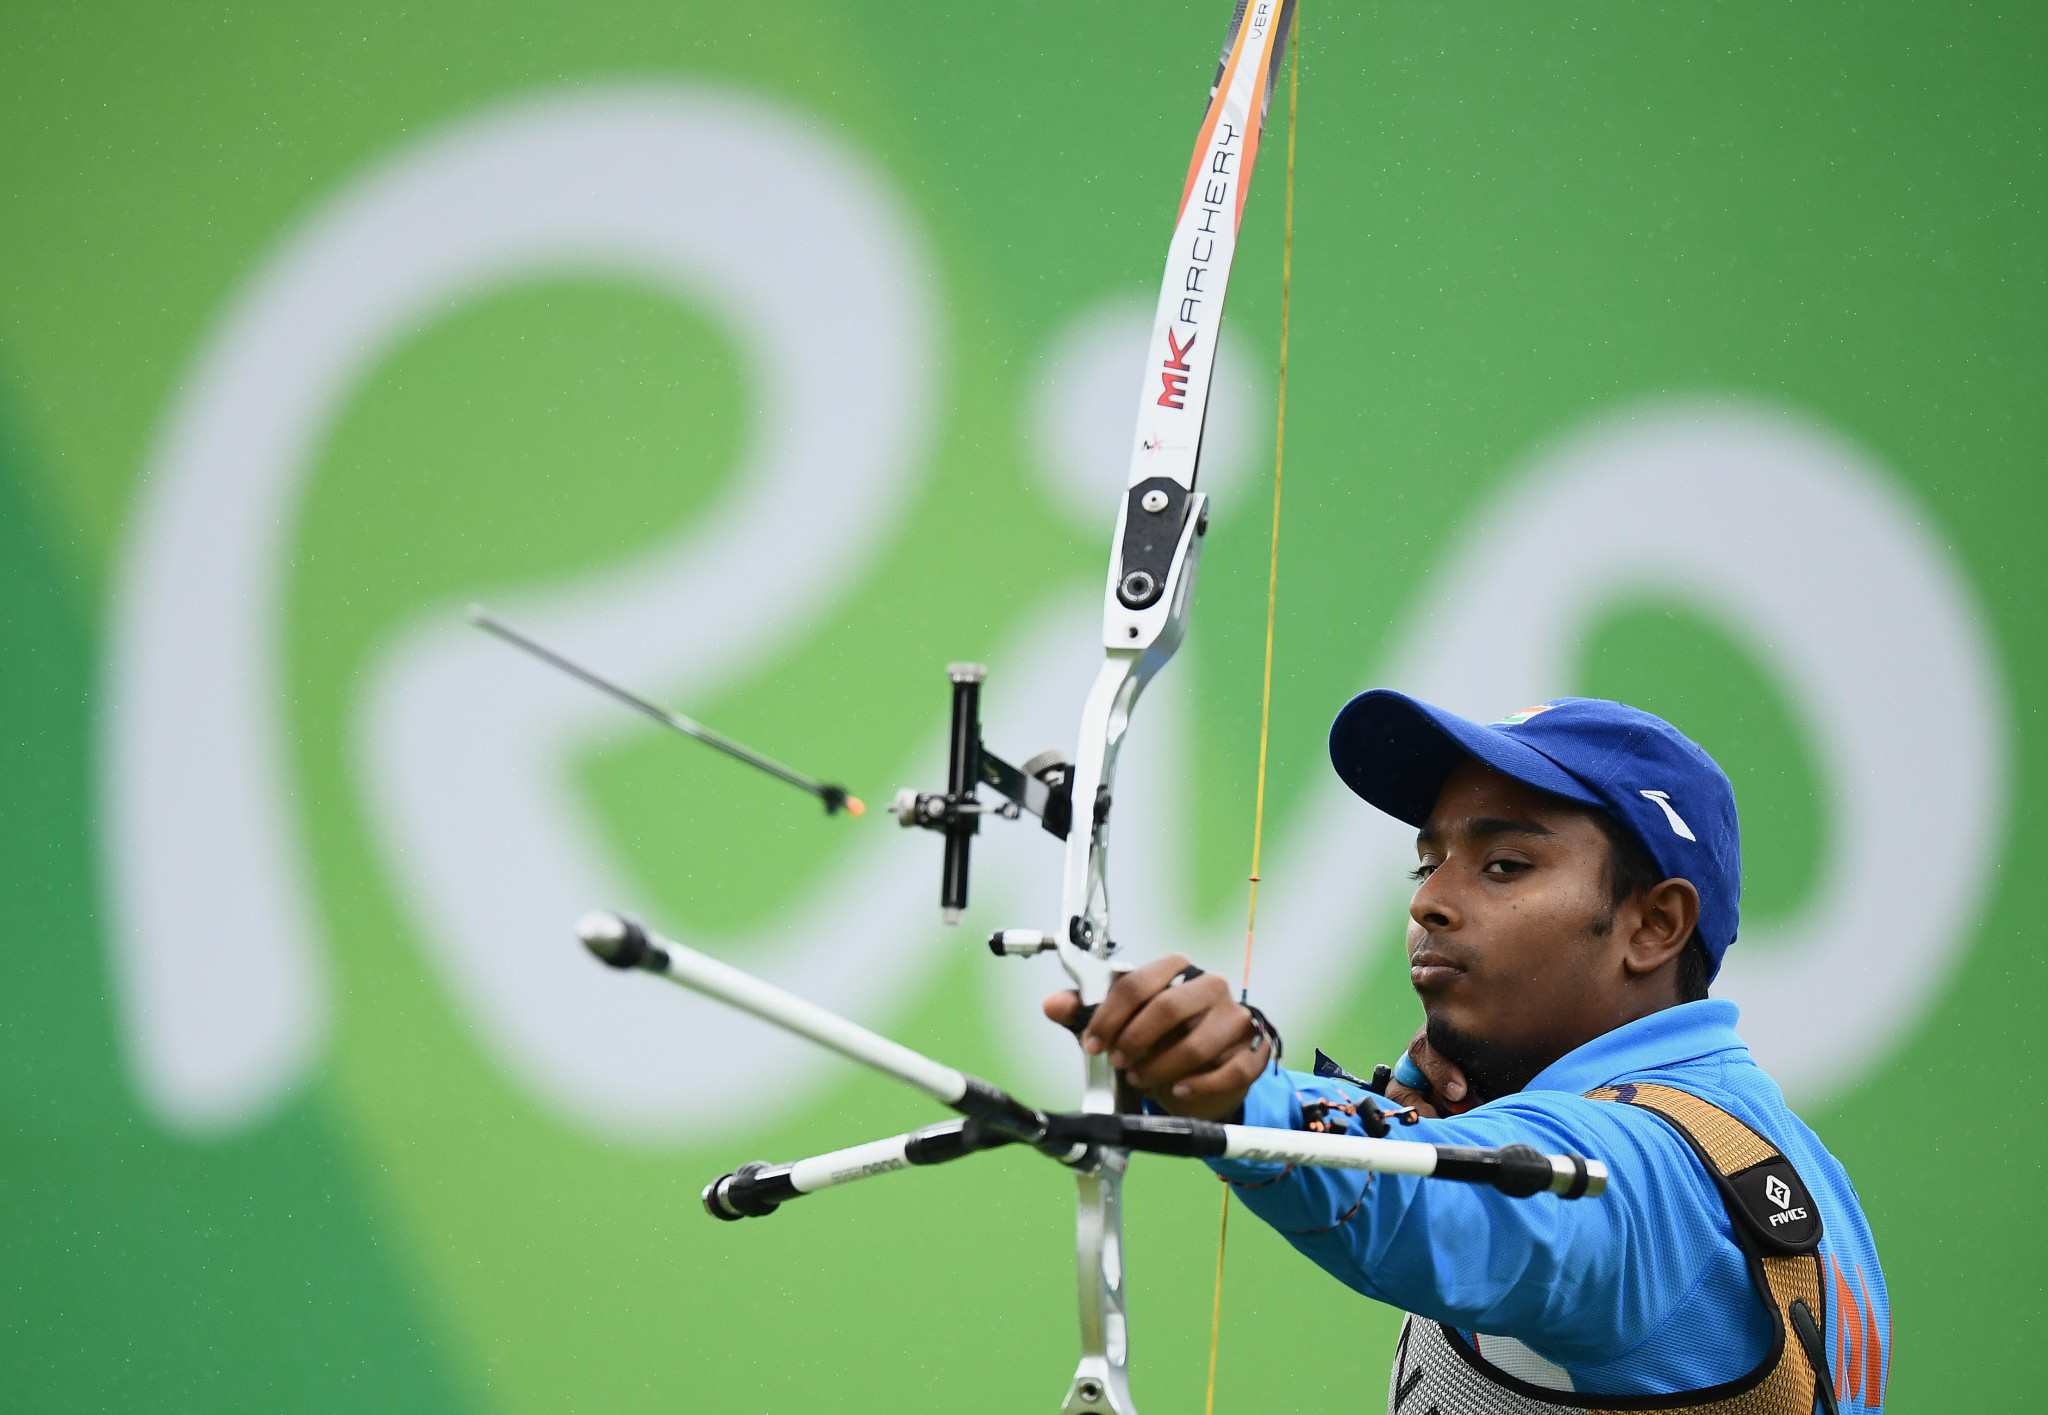 Atanu Das was set to lead the men's recurve team in Lausanne ©Getty Images